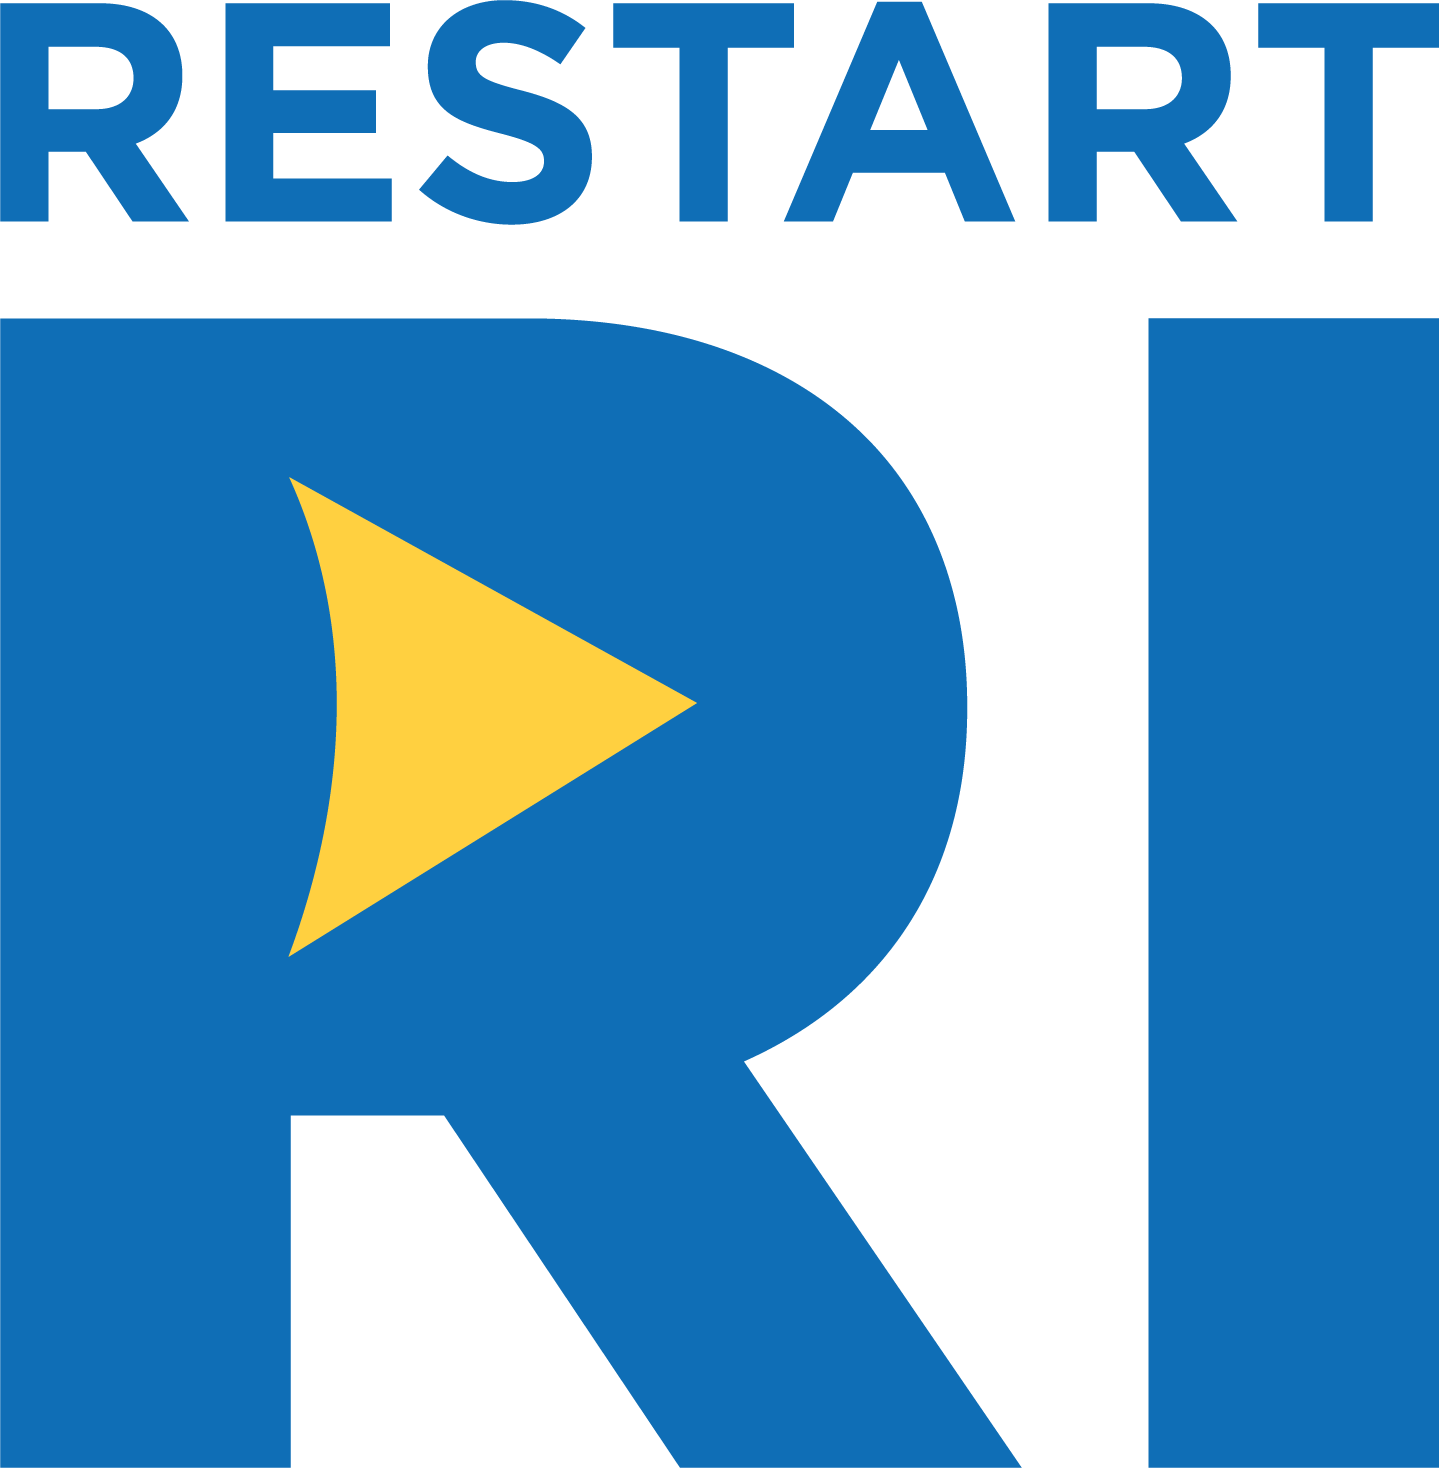 ReStart RI Launched to Bring Assistance to 1000 Small Businesses and New Startups